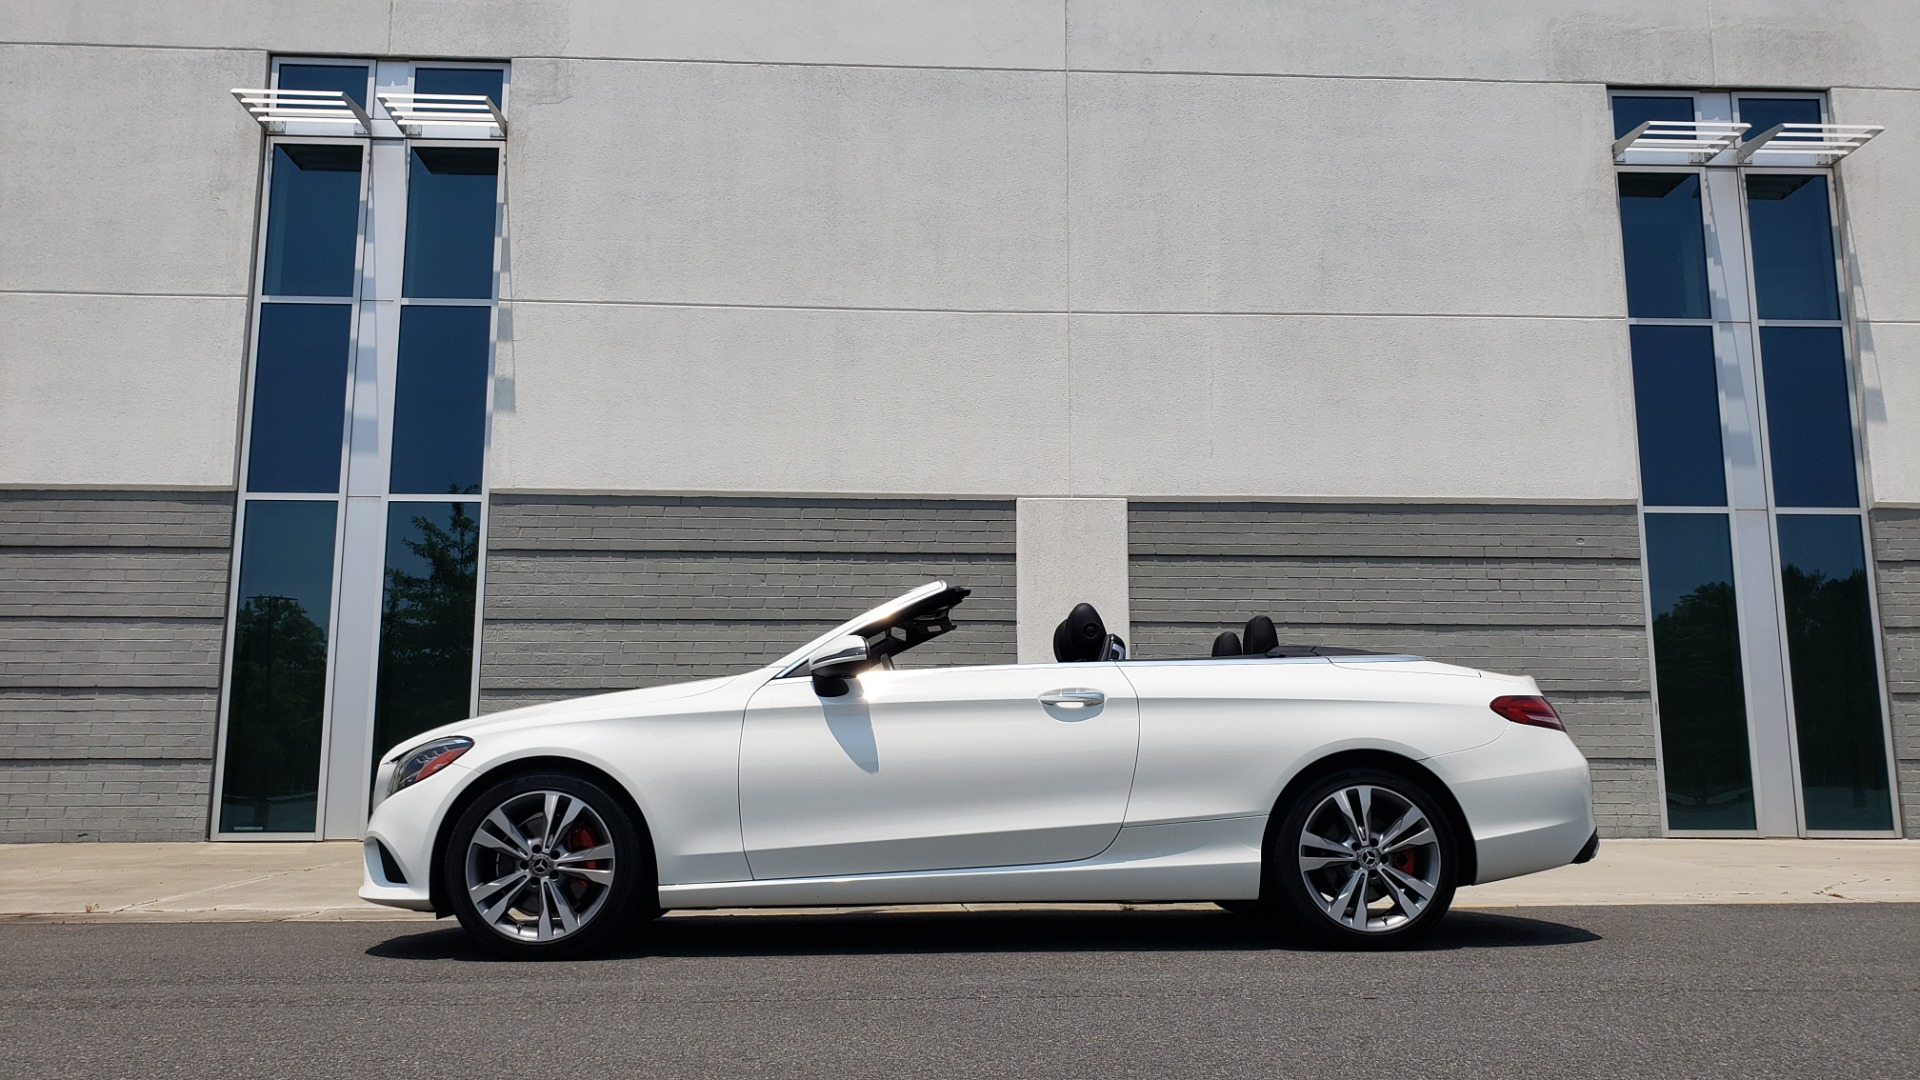 Used 2019 Mercedes-Benz C-CLASS C 300 CABRIOLET 2.0L / AUTO / NAV / HD RADIO / REARVIEW for sale $46,995 at Formula Imports in Charlotte NC 28227 2